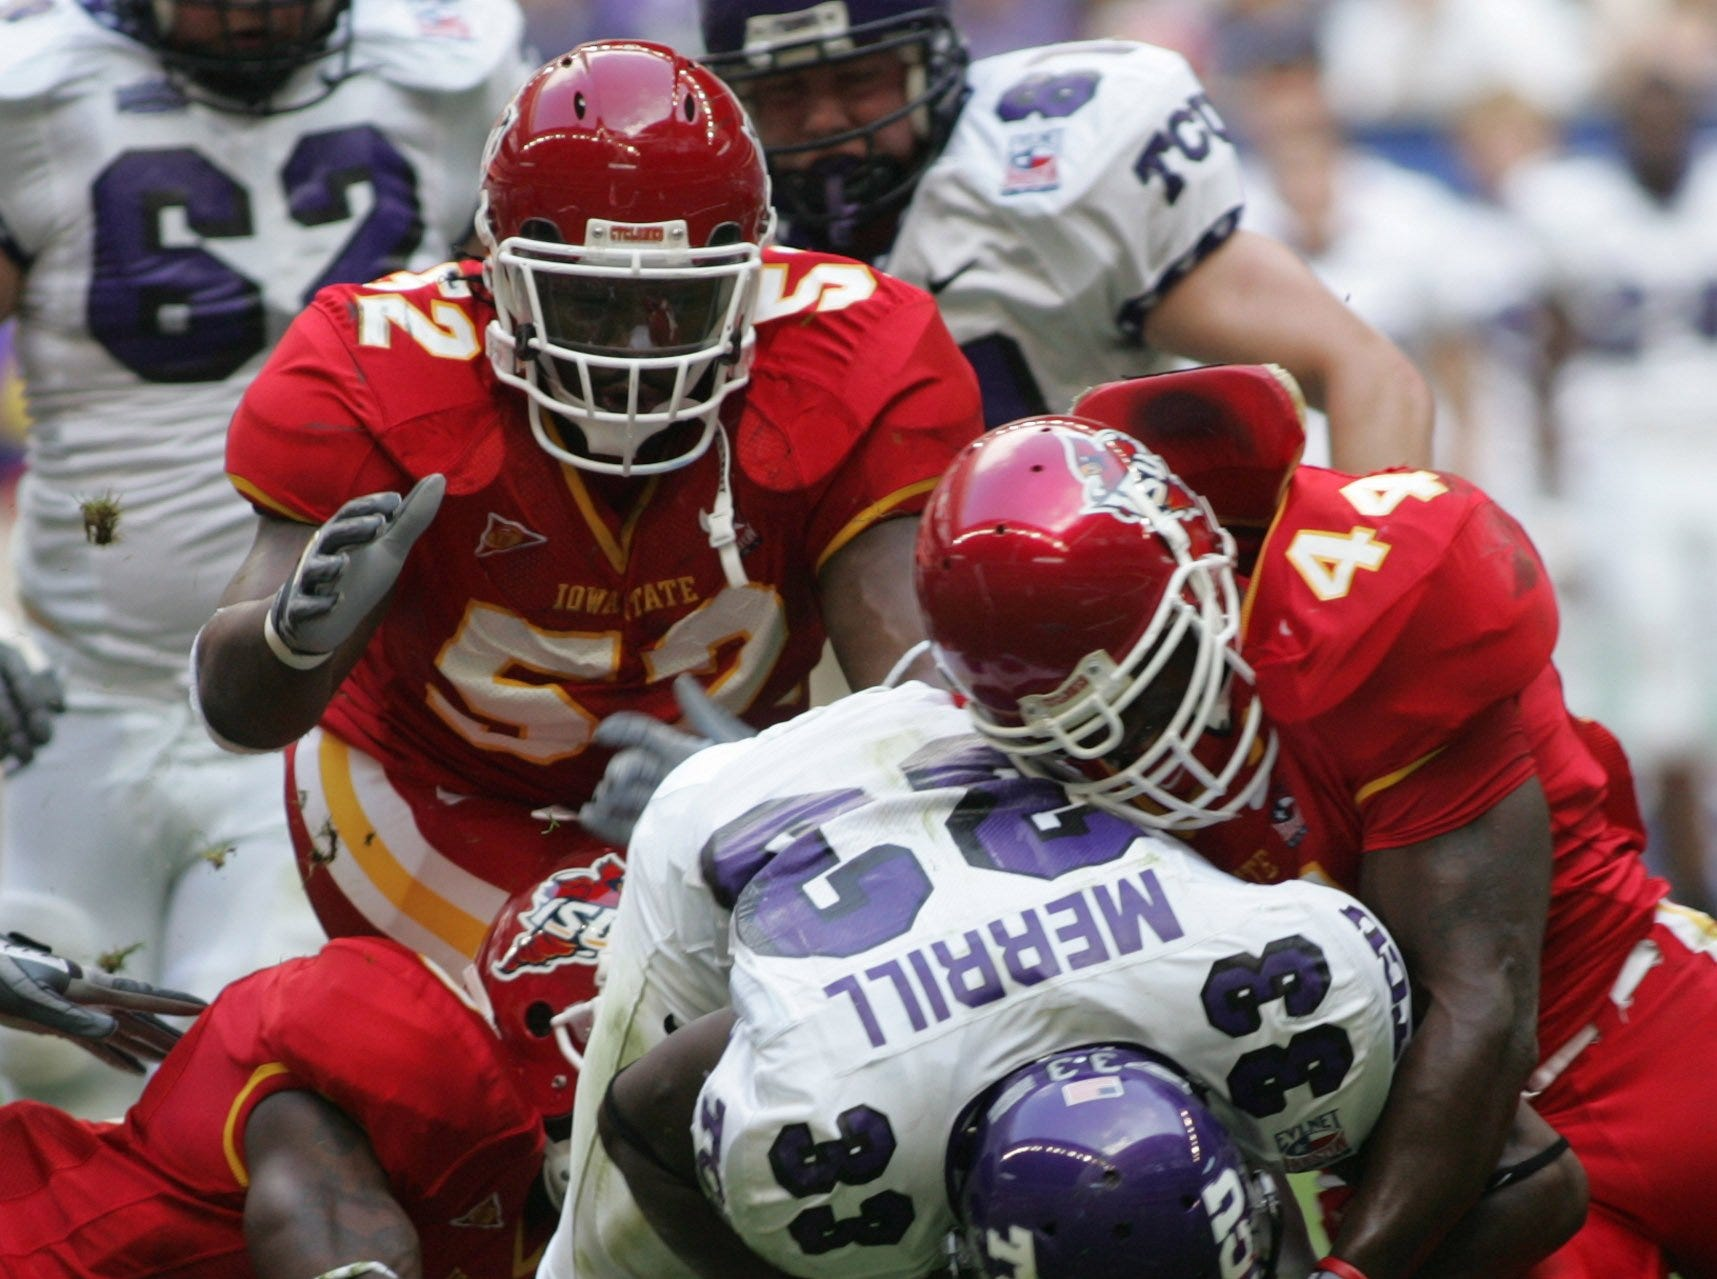 TCU running back Robert Merrill is brought down by Iowa State's Brent Curvey (52), Tim Dobbins (44) and others during the 2005 Houston Bowl.